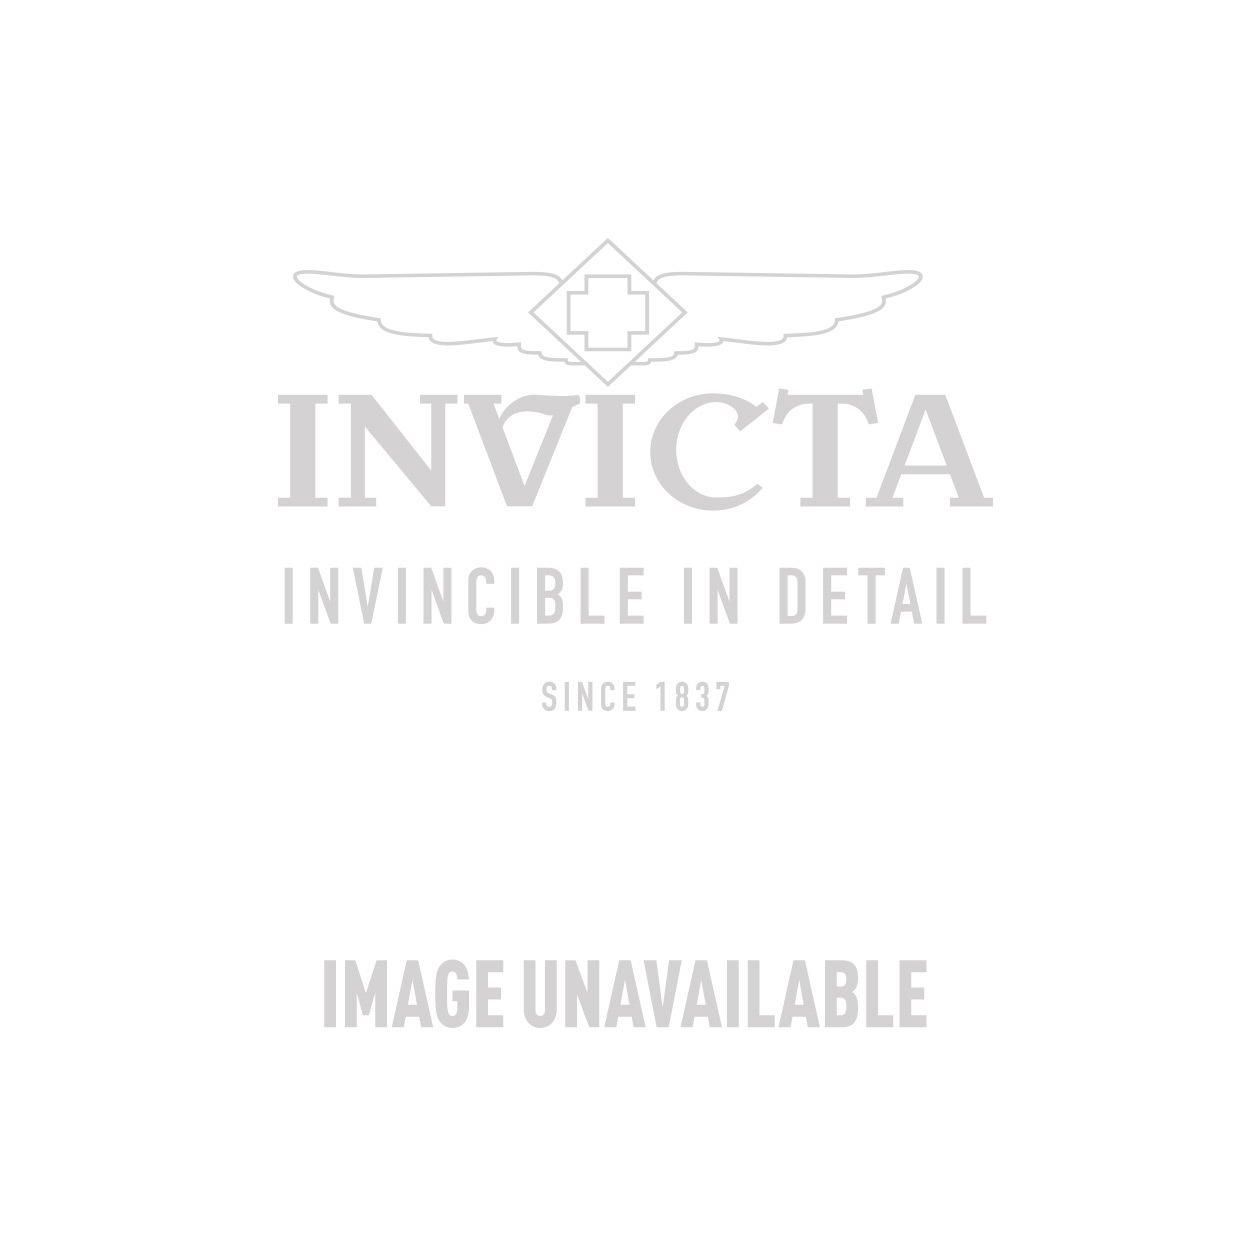 Invicta Reserve Swiss Made Quartz Watch - Gunmetal, Stainless Steel case Stainless Steel band - Model 10590